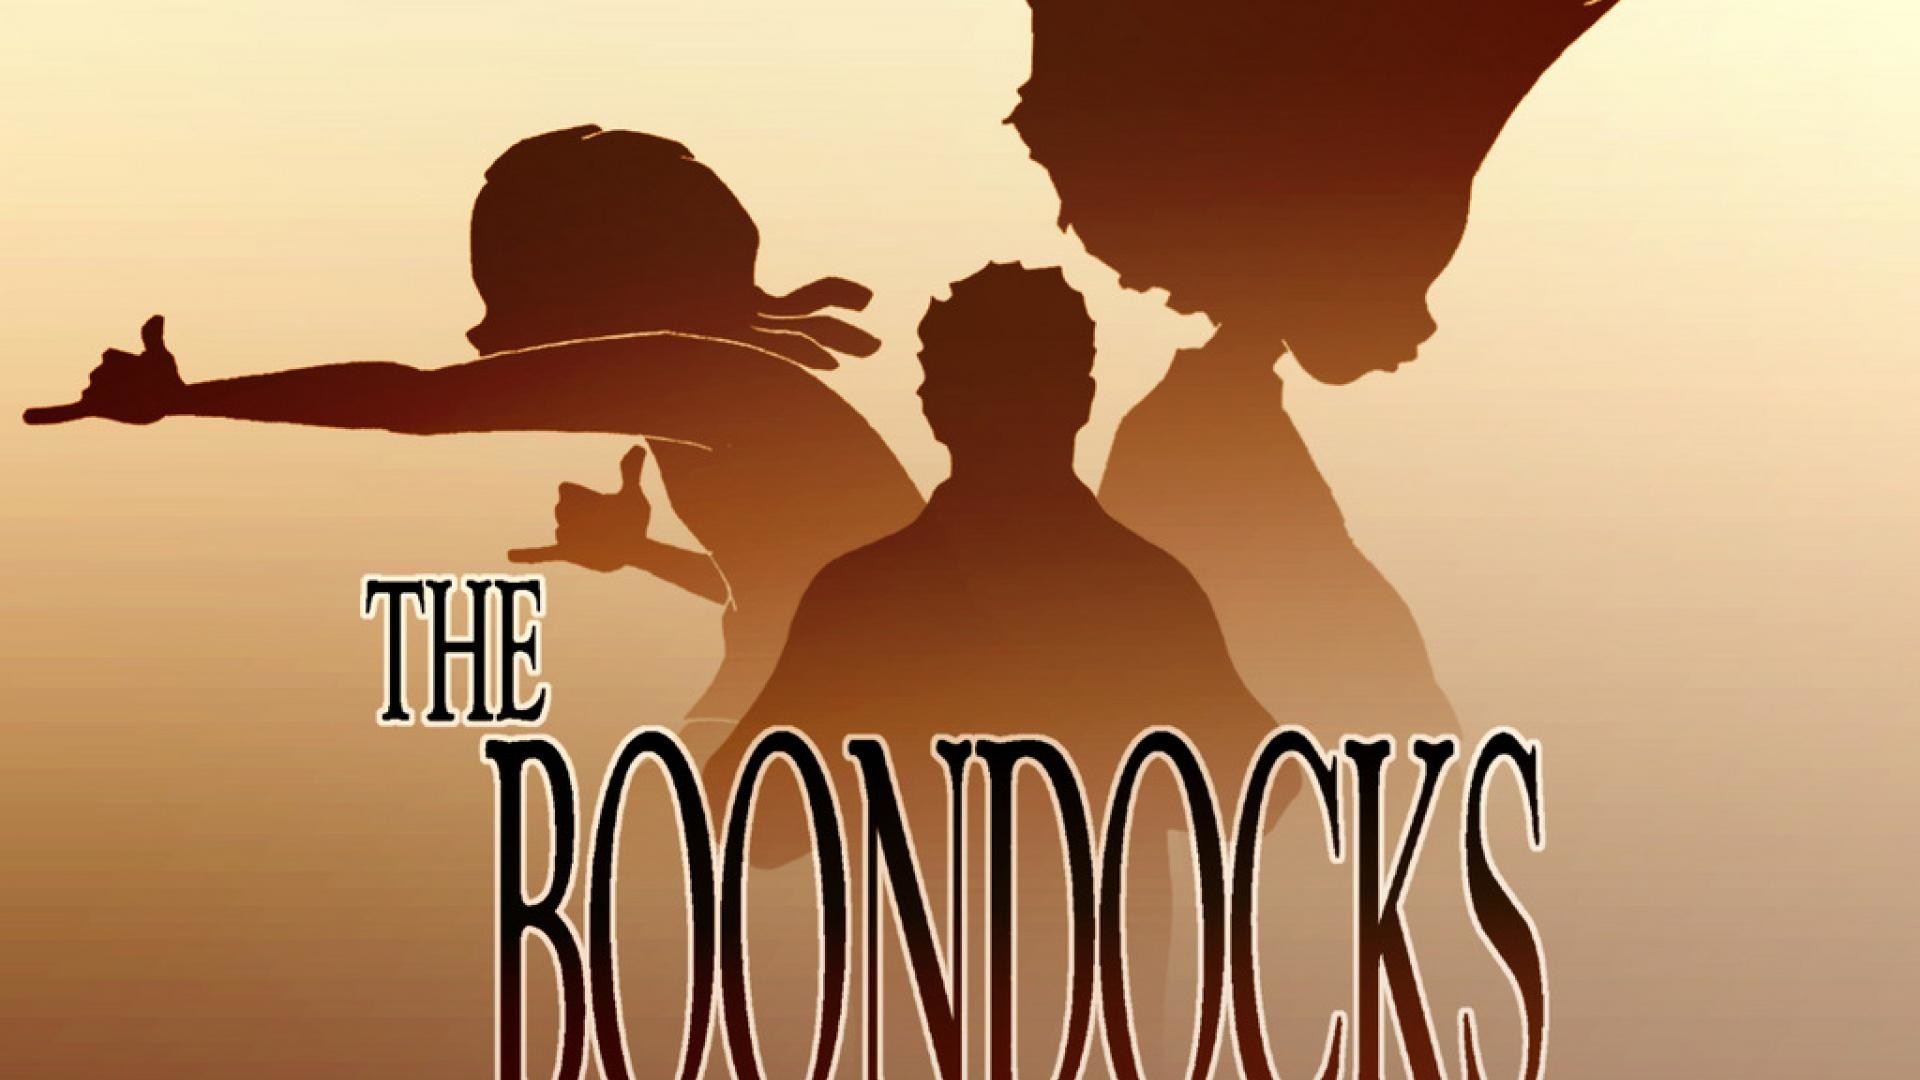 1920x1080 The Boondocks Wallpaper New IPhone